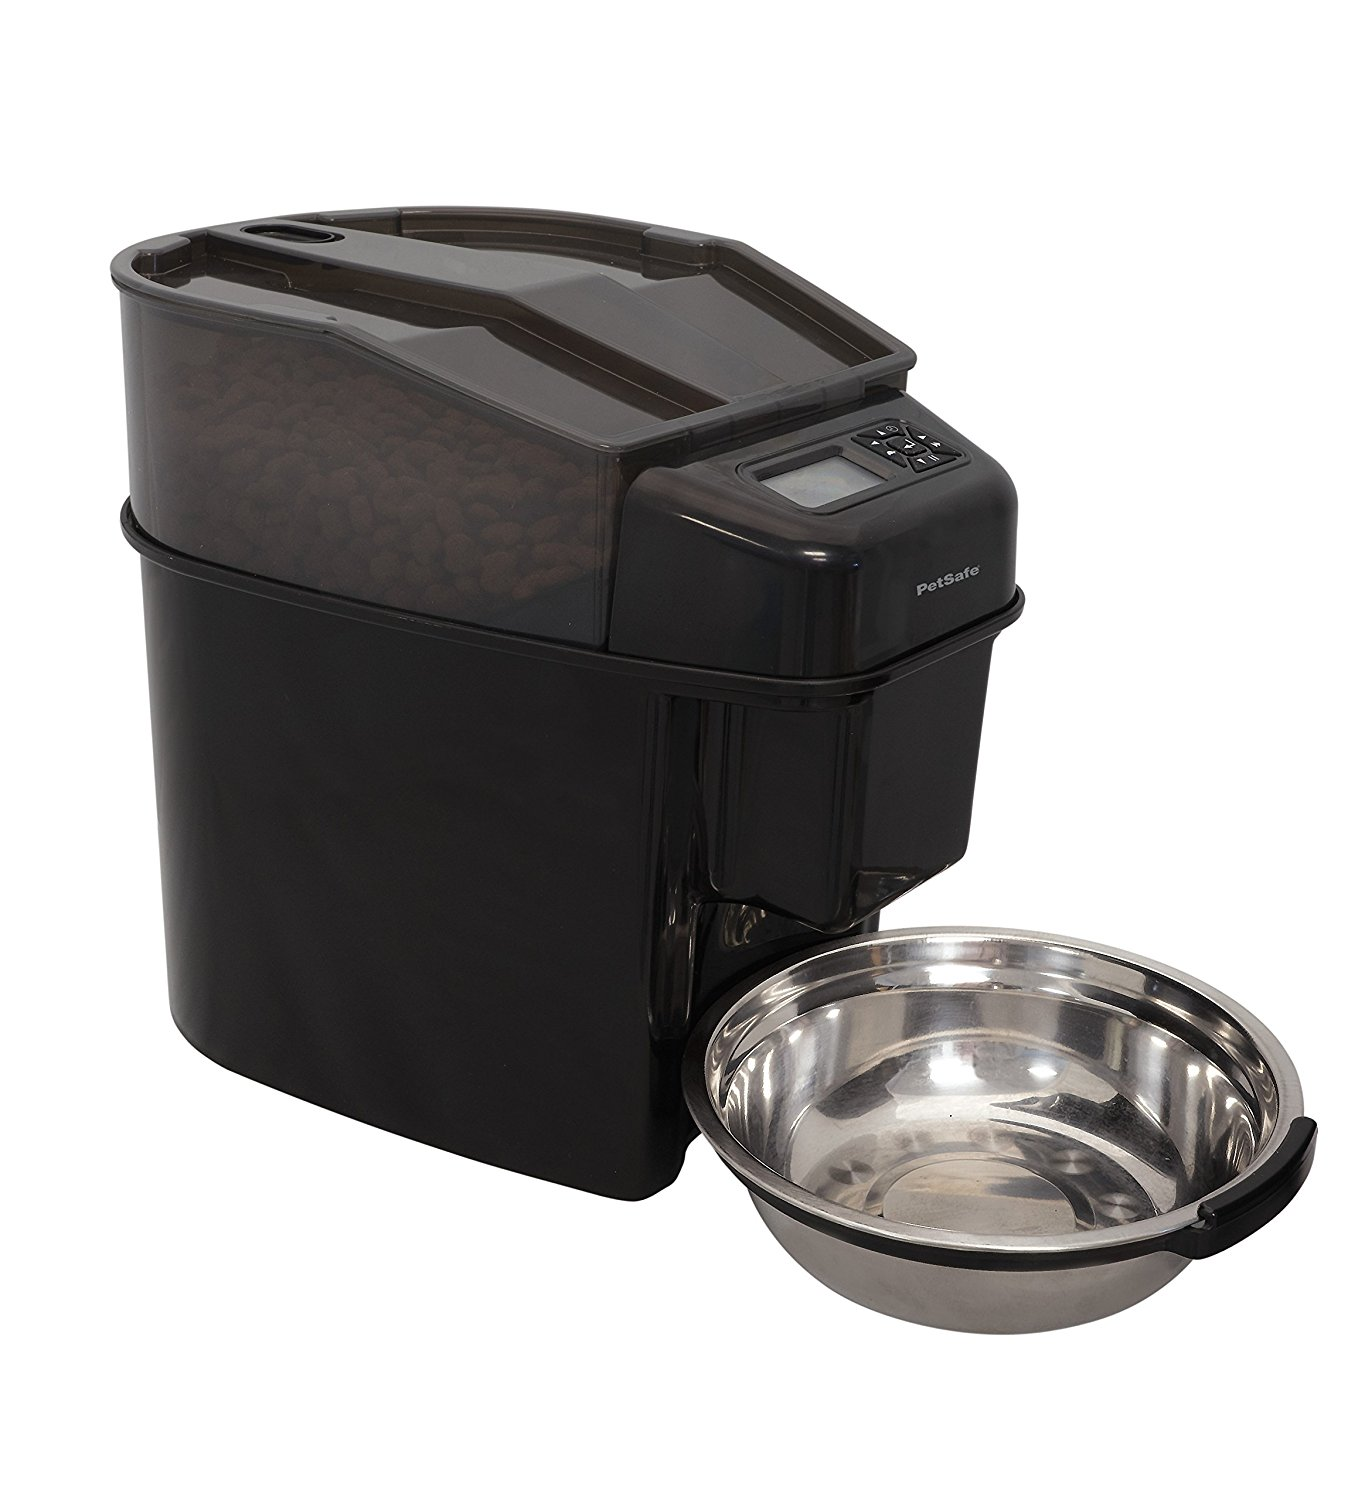 PetSafe-Healthy-Pet-Simply-Feed-Automatic-Feeder 10 Best Automatic Pet Feeders